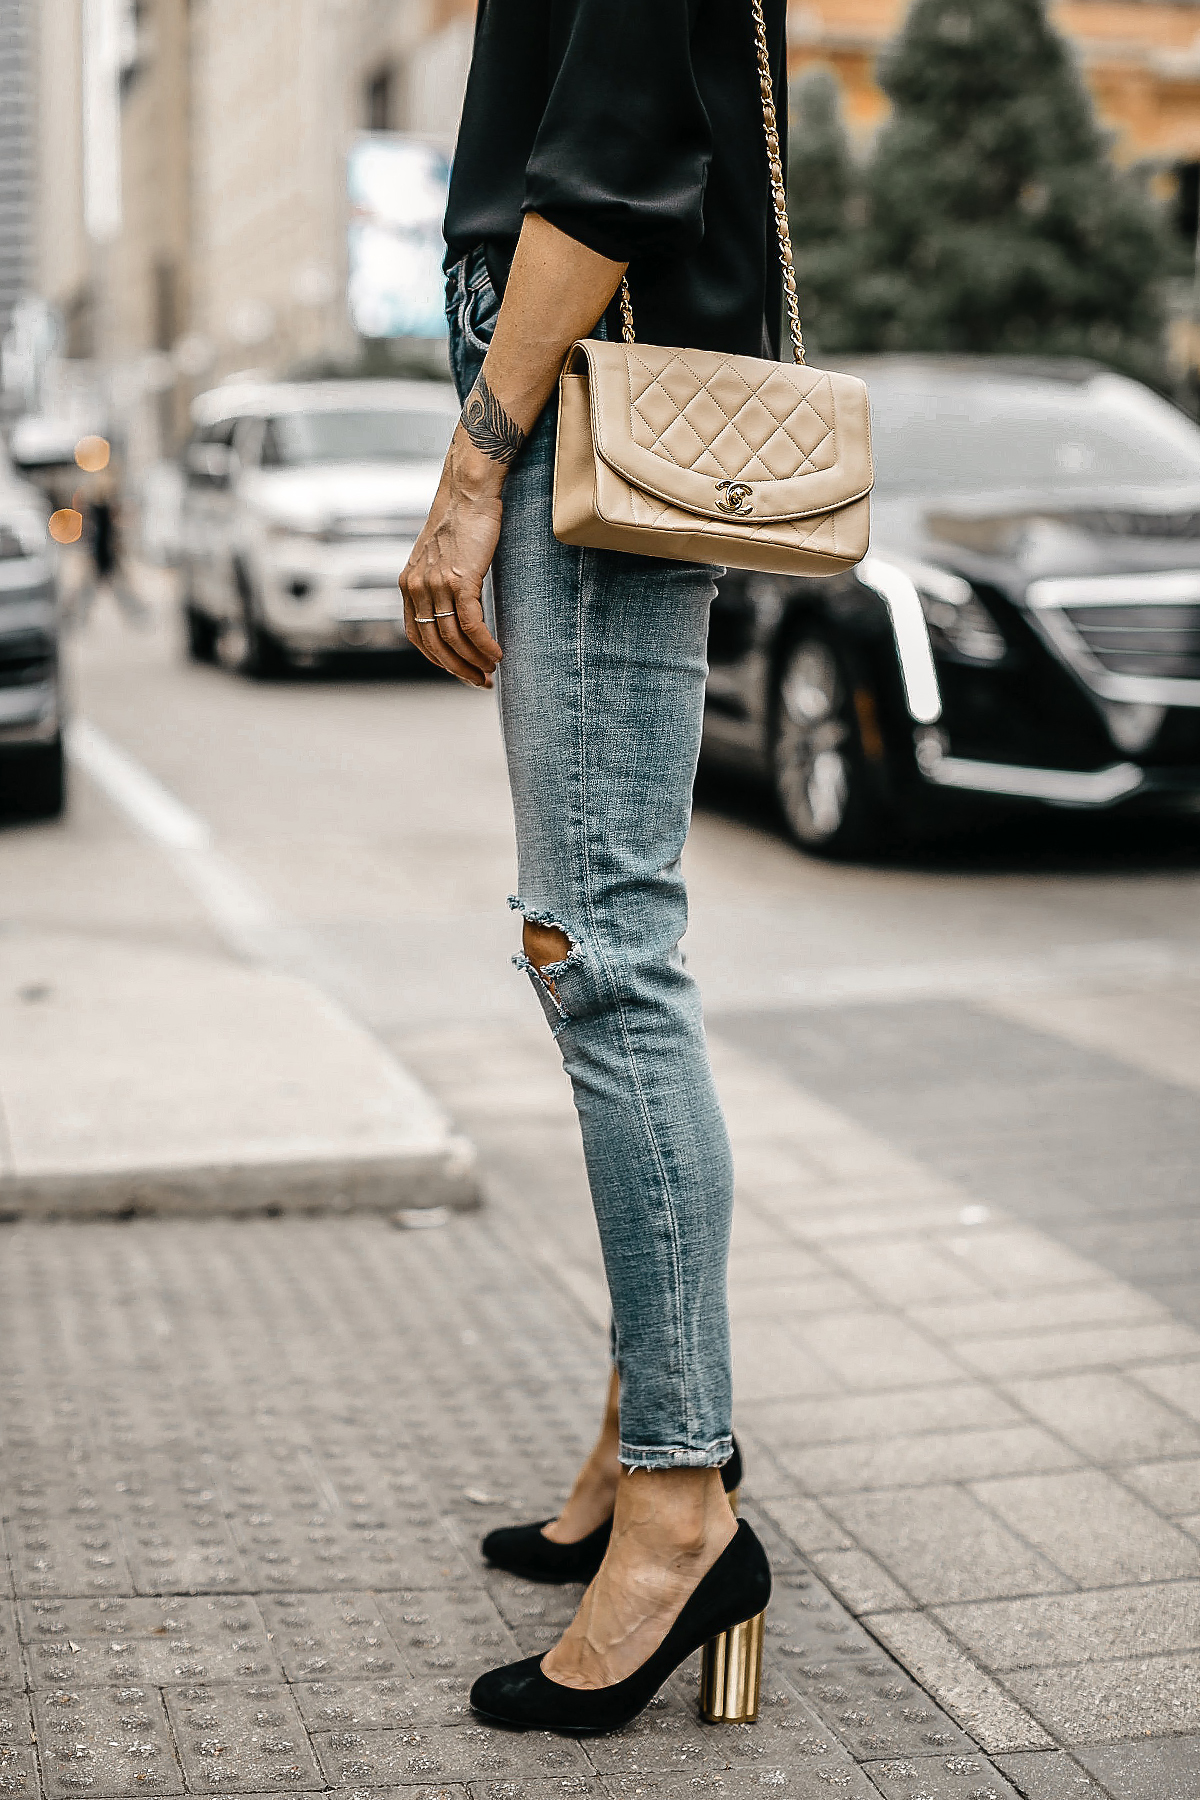 Woman Wearing Blanknyc Ripped Denim Skinny Jeans Salvatore Ferragamo Black Pumps Tan Chanel Quilted Handbag Fashion Jackson Dallas Blogger Fashion Blogger Street Style